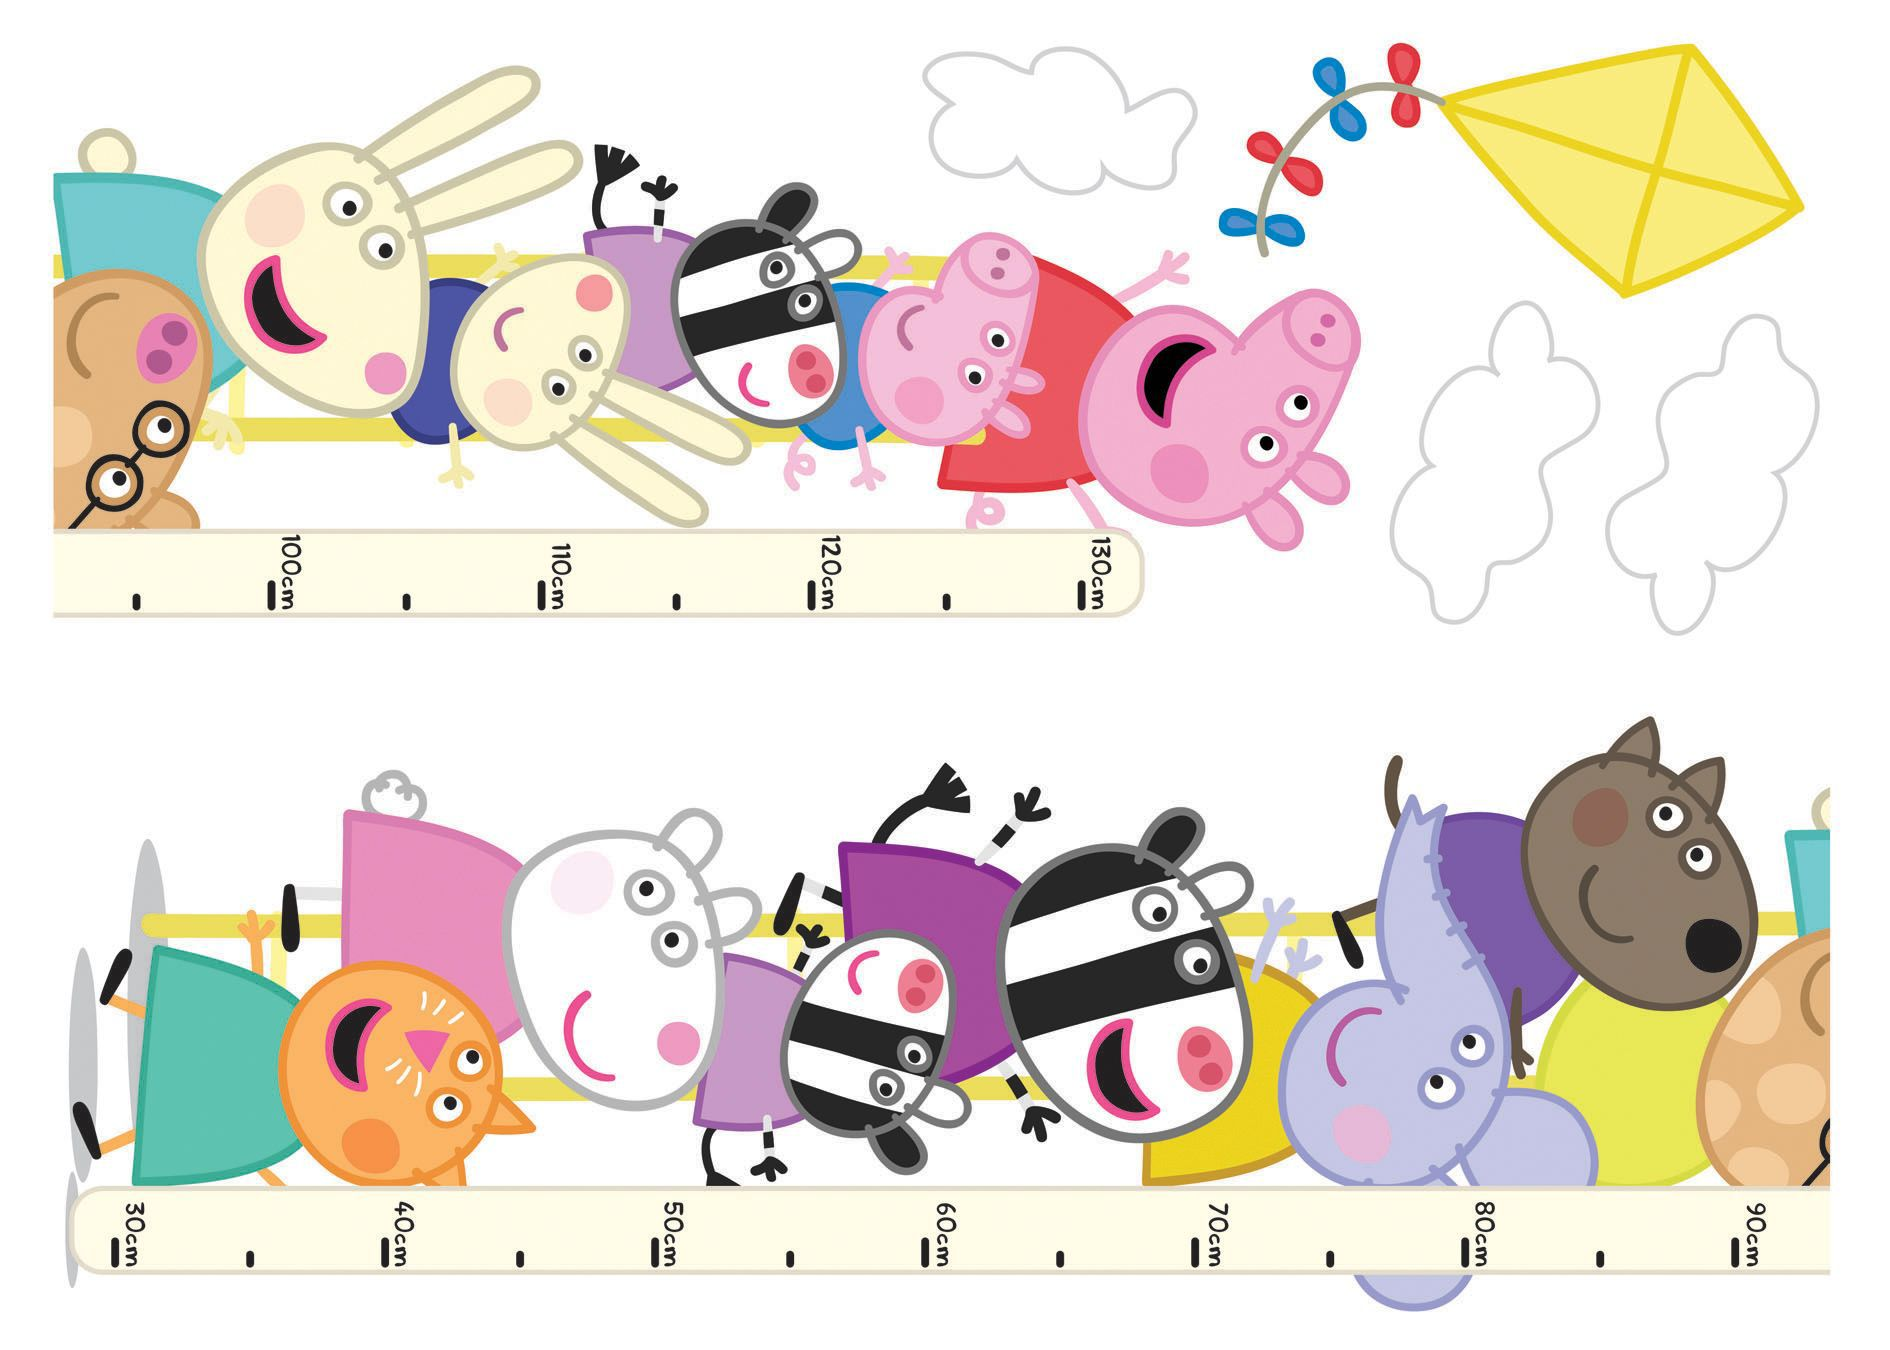 Peppa pig multicolour self adhesive wall sticker departments peppa pig multicolour self adhesive wall sticker departments diy at bq amipublicfo Images